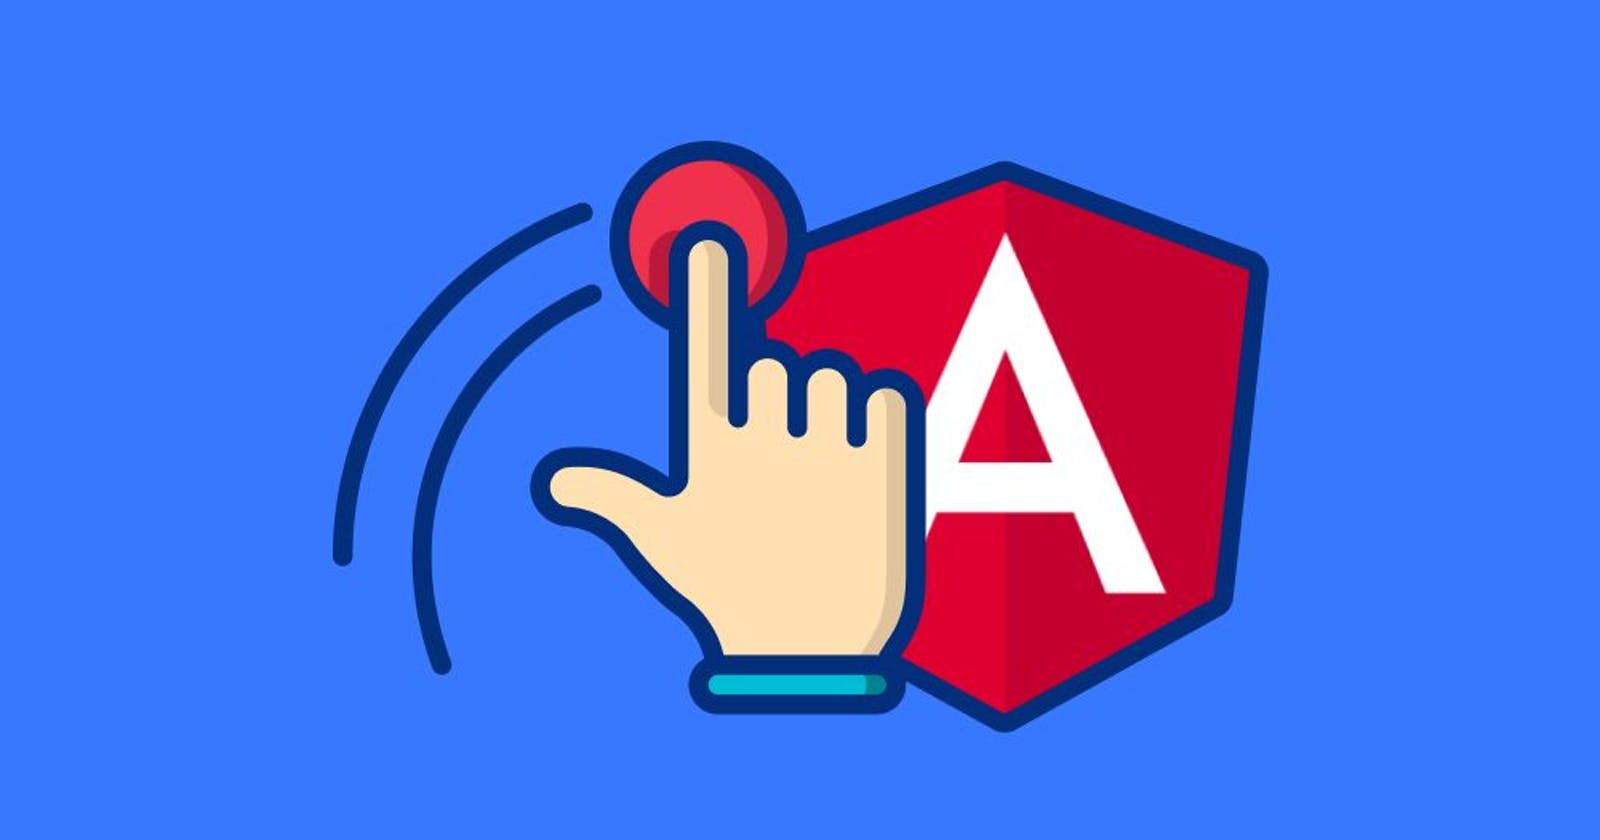 Create a directive for free dragging in Angular